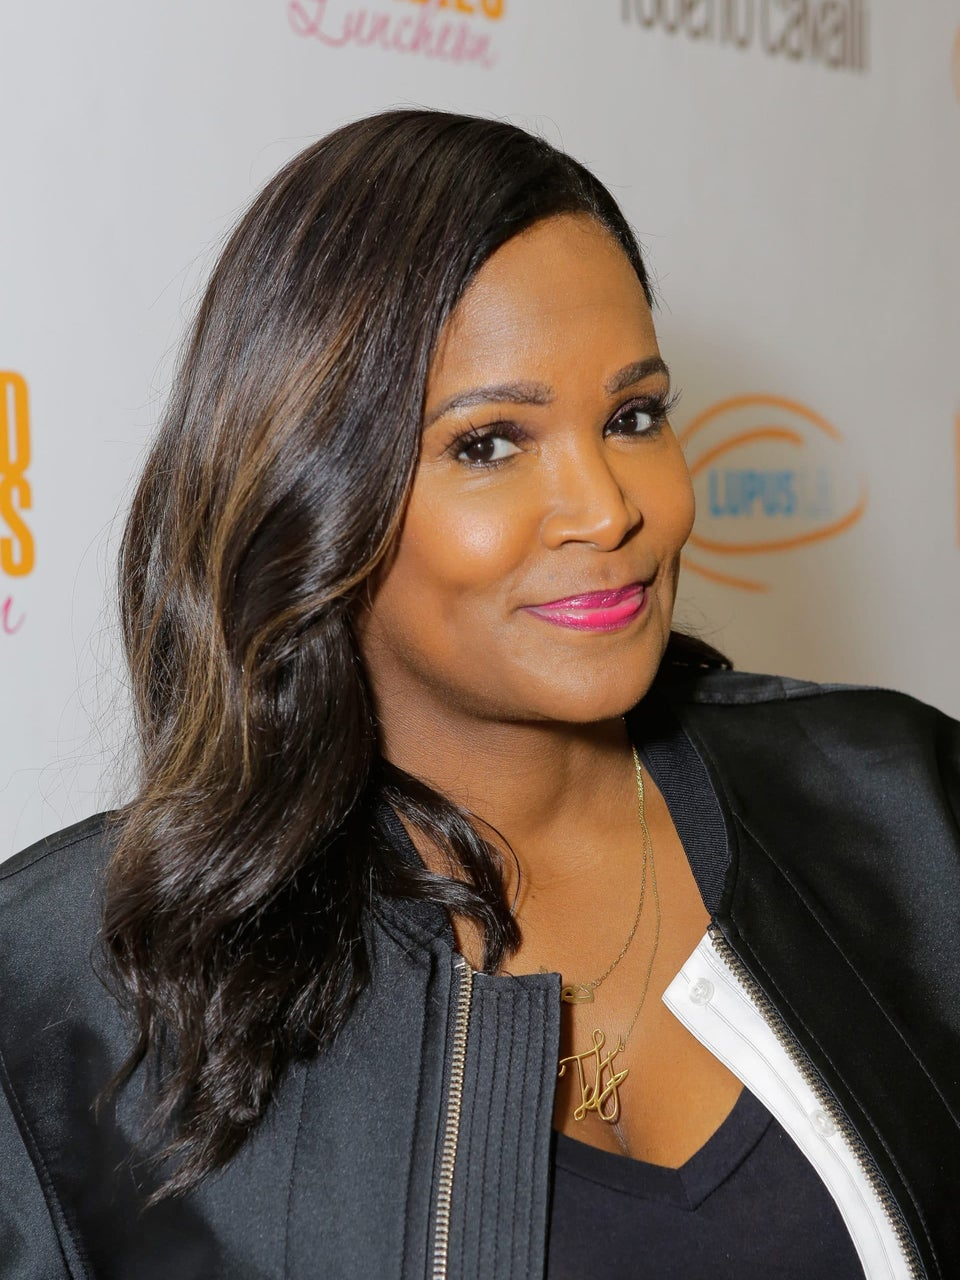 10 Years After Almost Dying During A Plastic Surgery Procedure, Tameka Foster Knows Her Worth